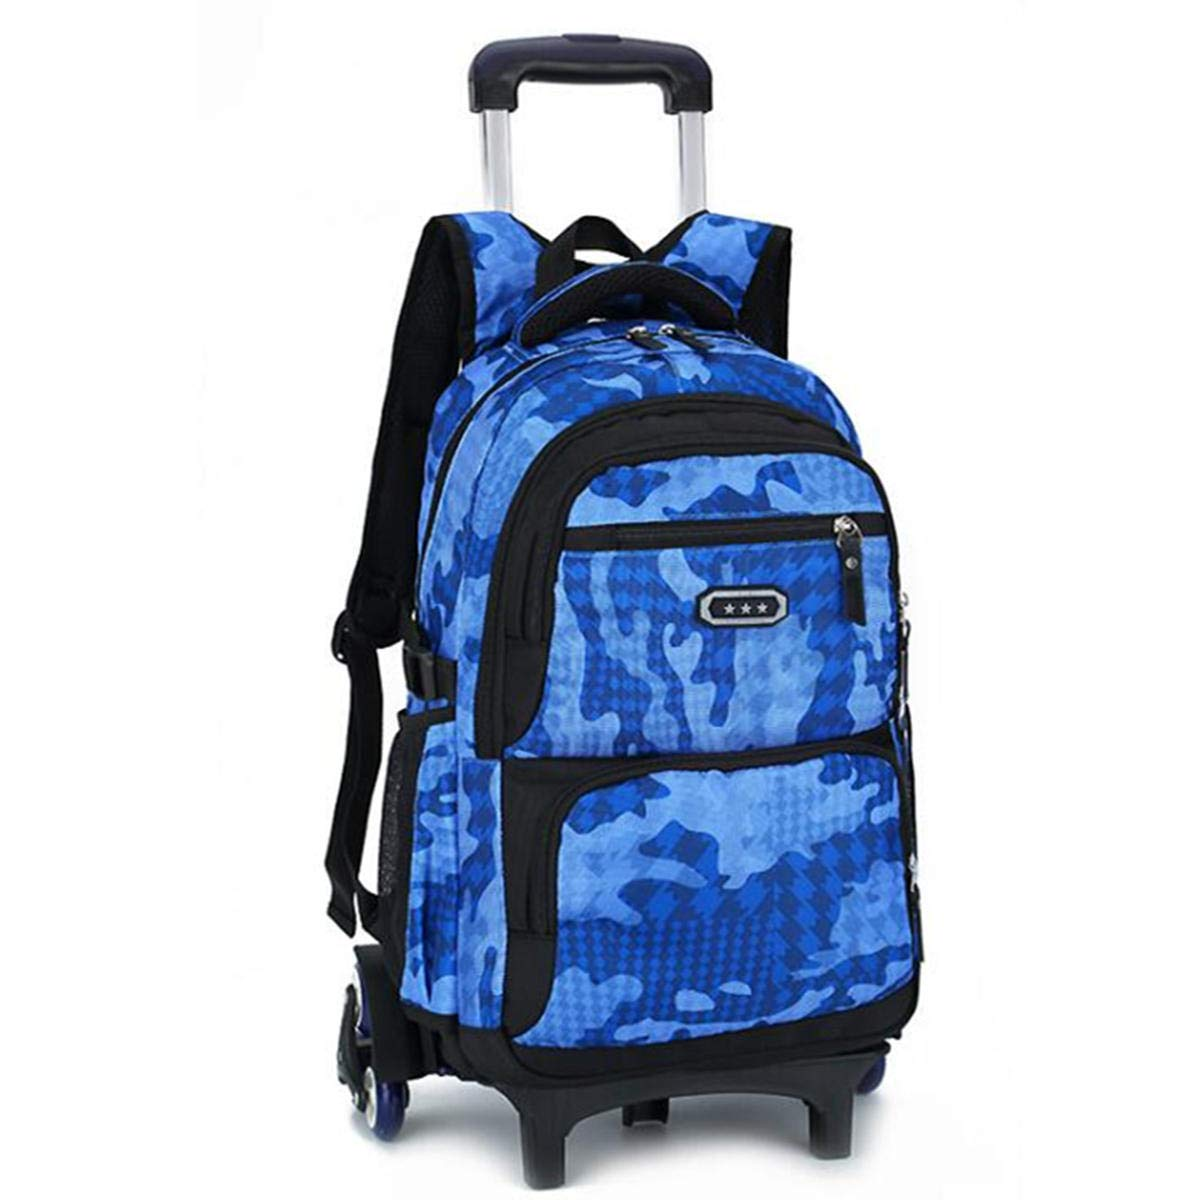 F.S.M. 29L Detachable Wheels Trolley Luggage Backpack Travel Rucksack Teenager Student School Bag Pack - Sky Blue B by F.S.M.